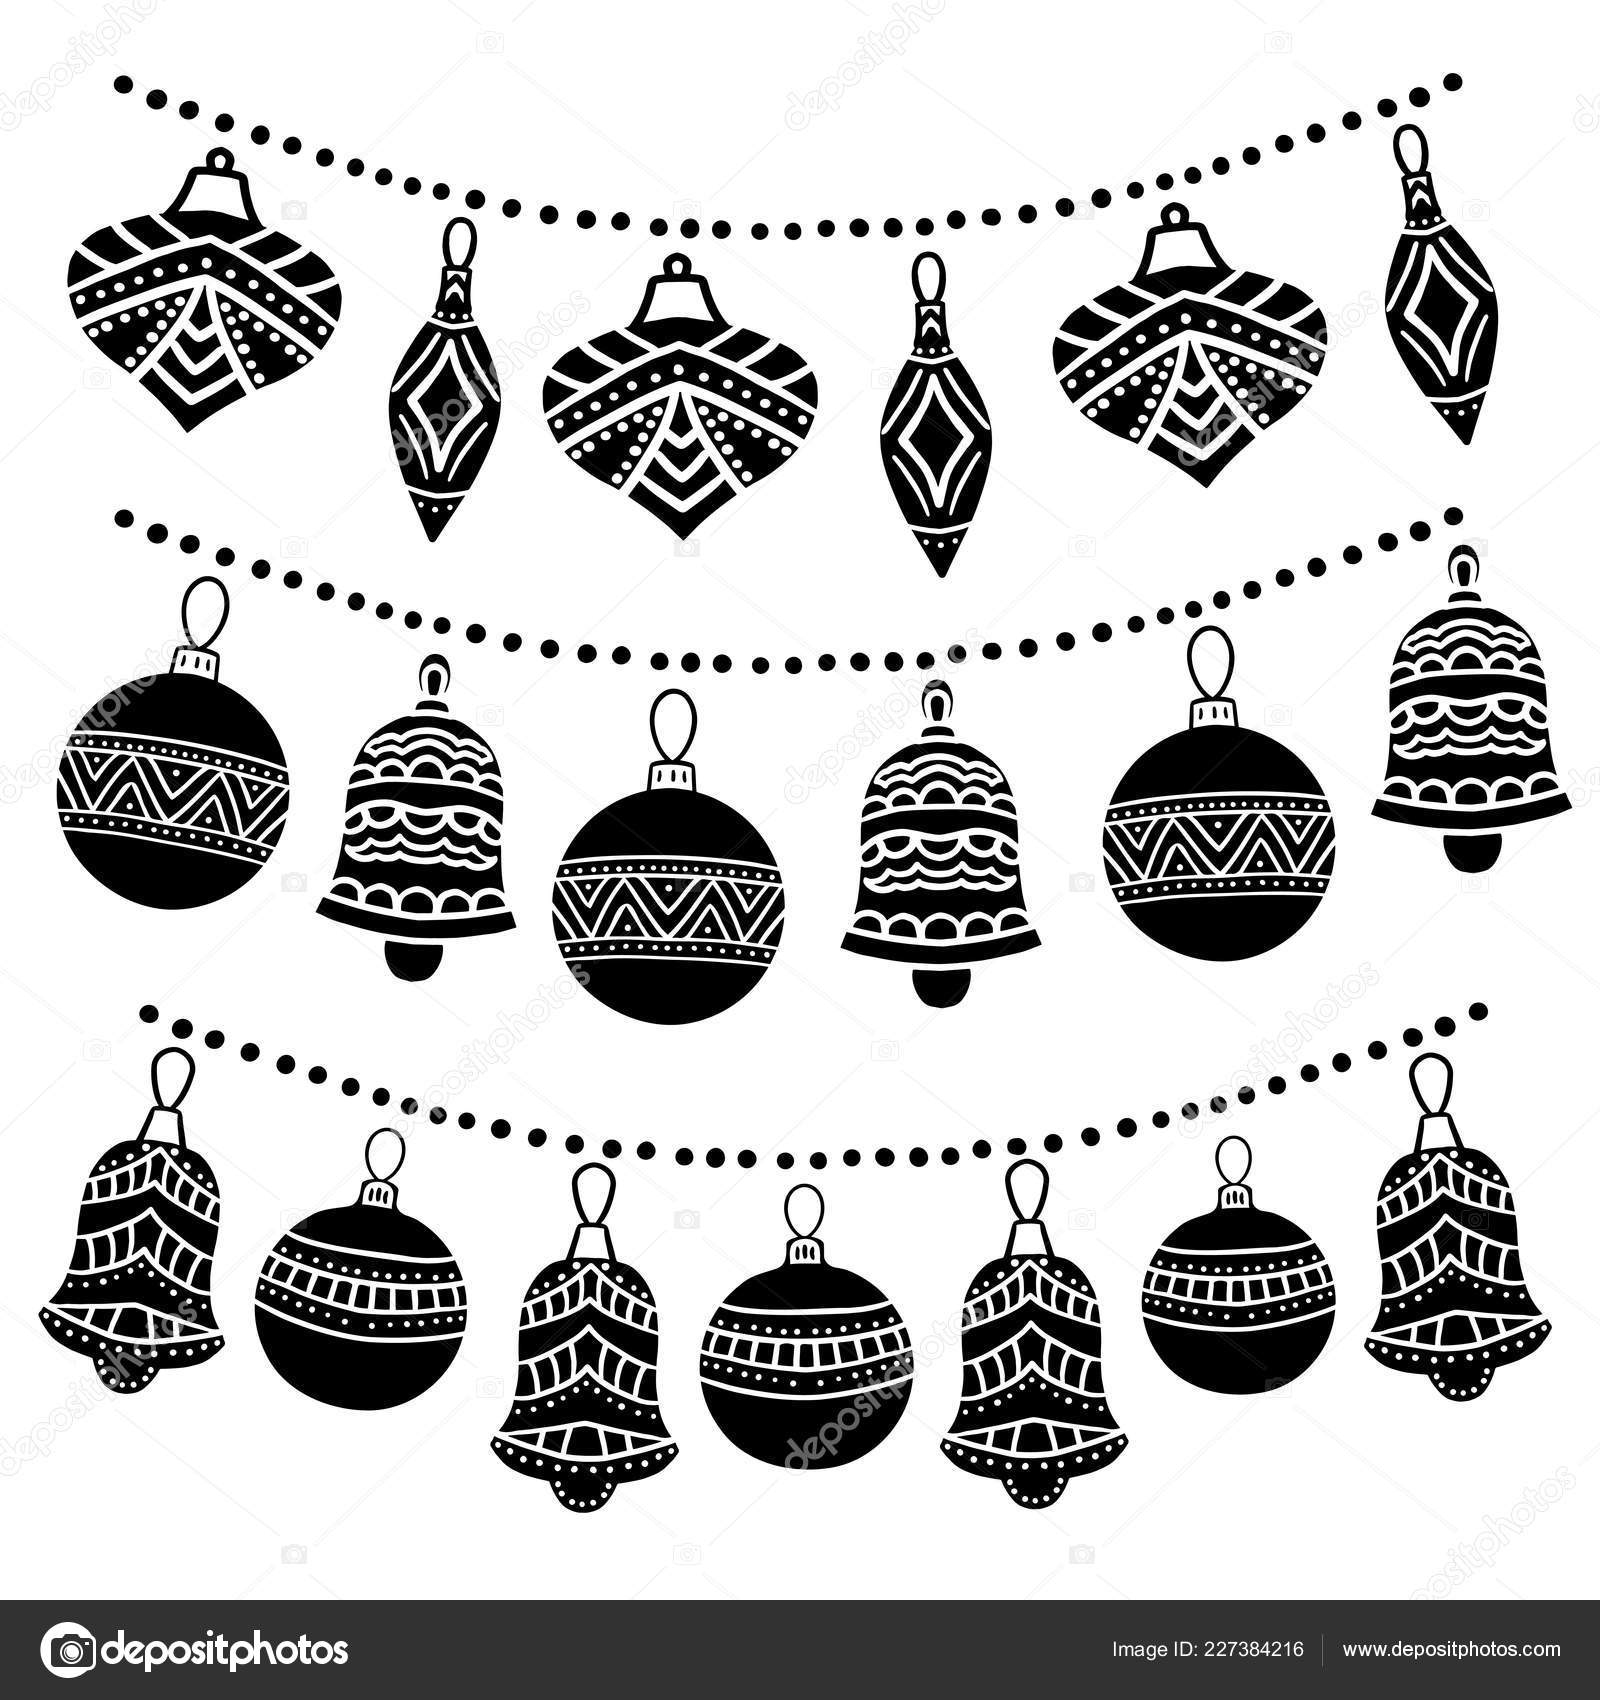 Christmas Garland Drawing.Christmas Garland Sketch Drawing For Your Design Greeting